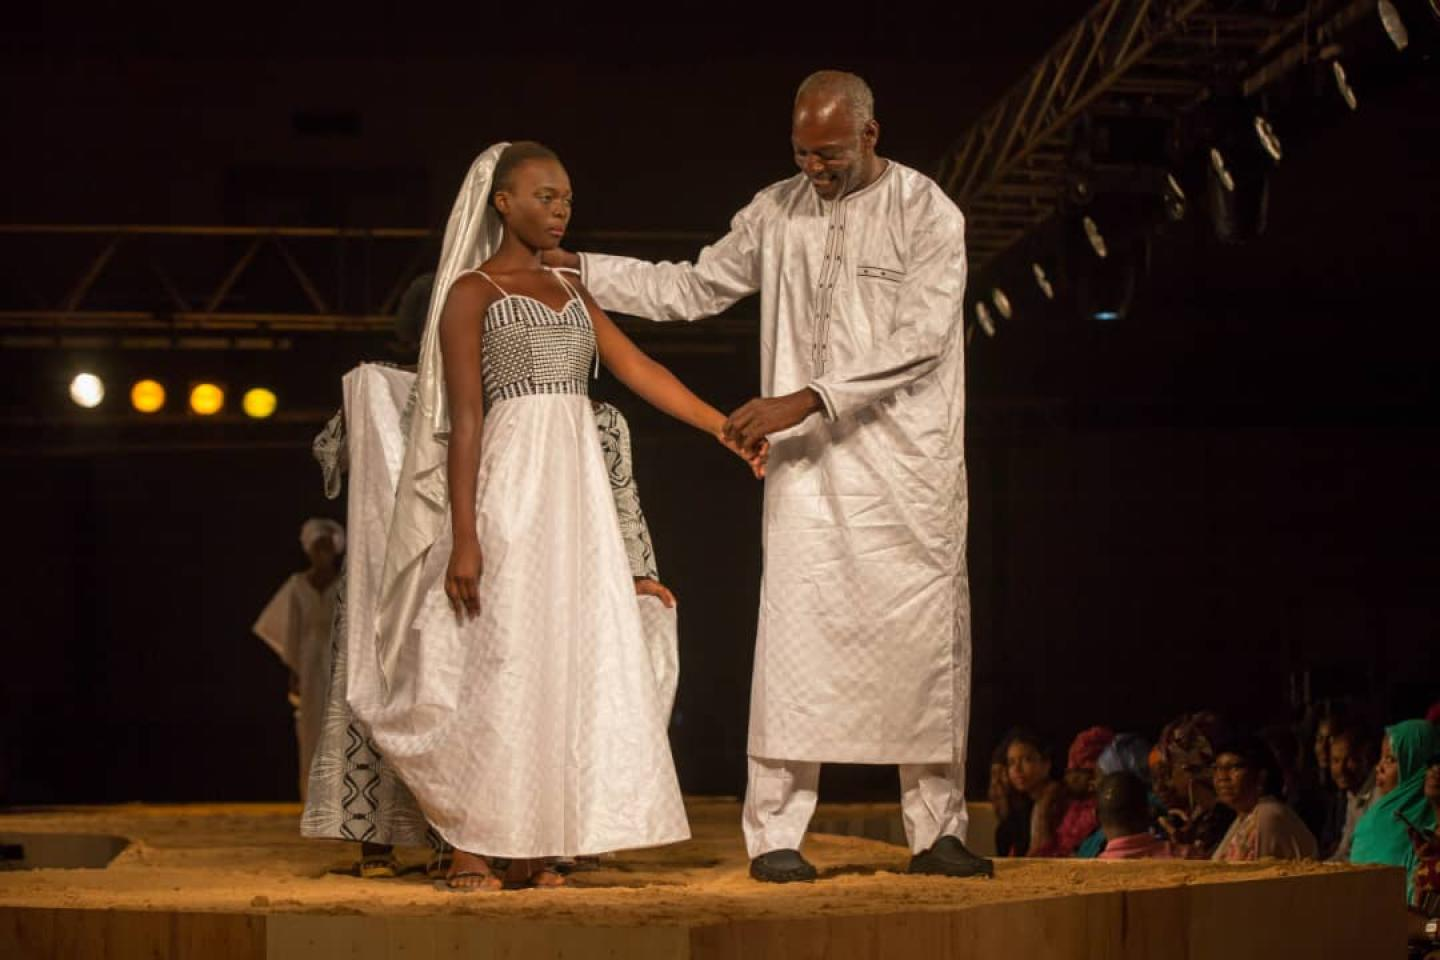 The Fashion Designer Alphadi Lends His Talents To Promote Child Rights In Niger